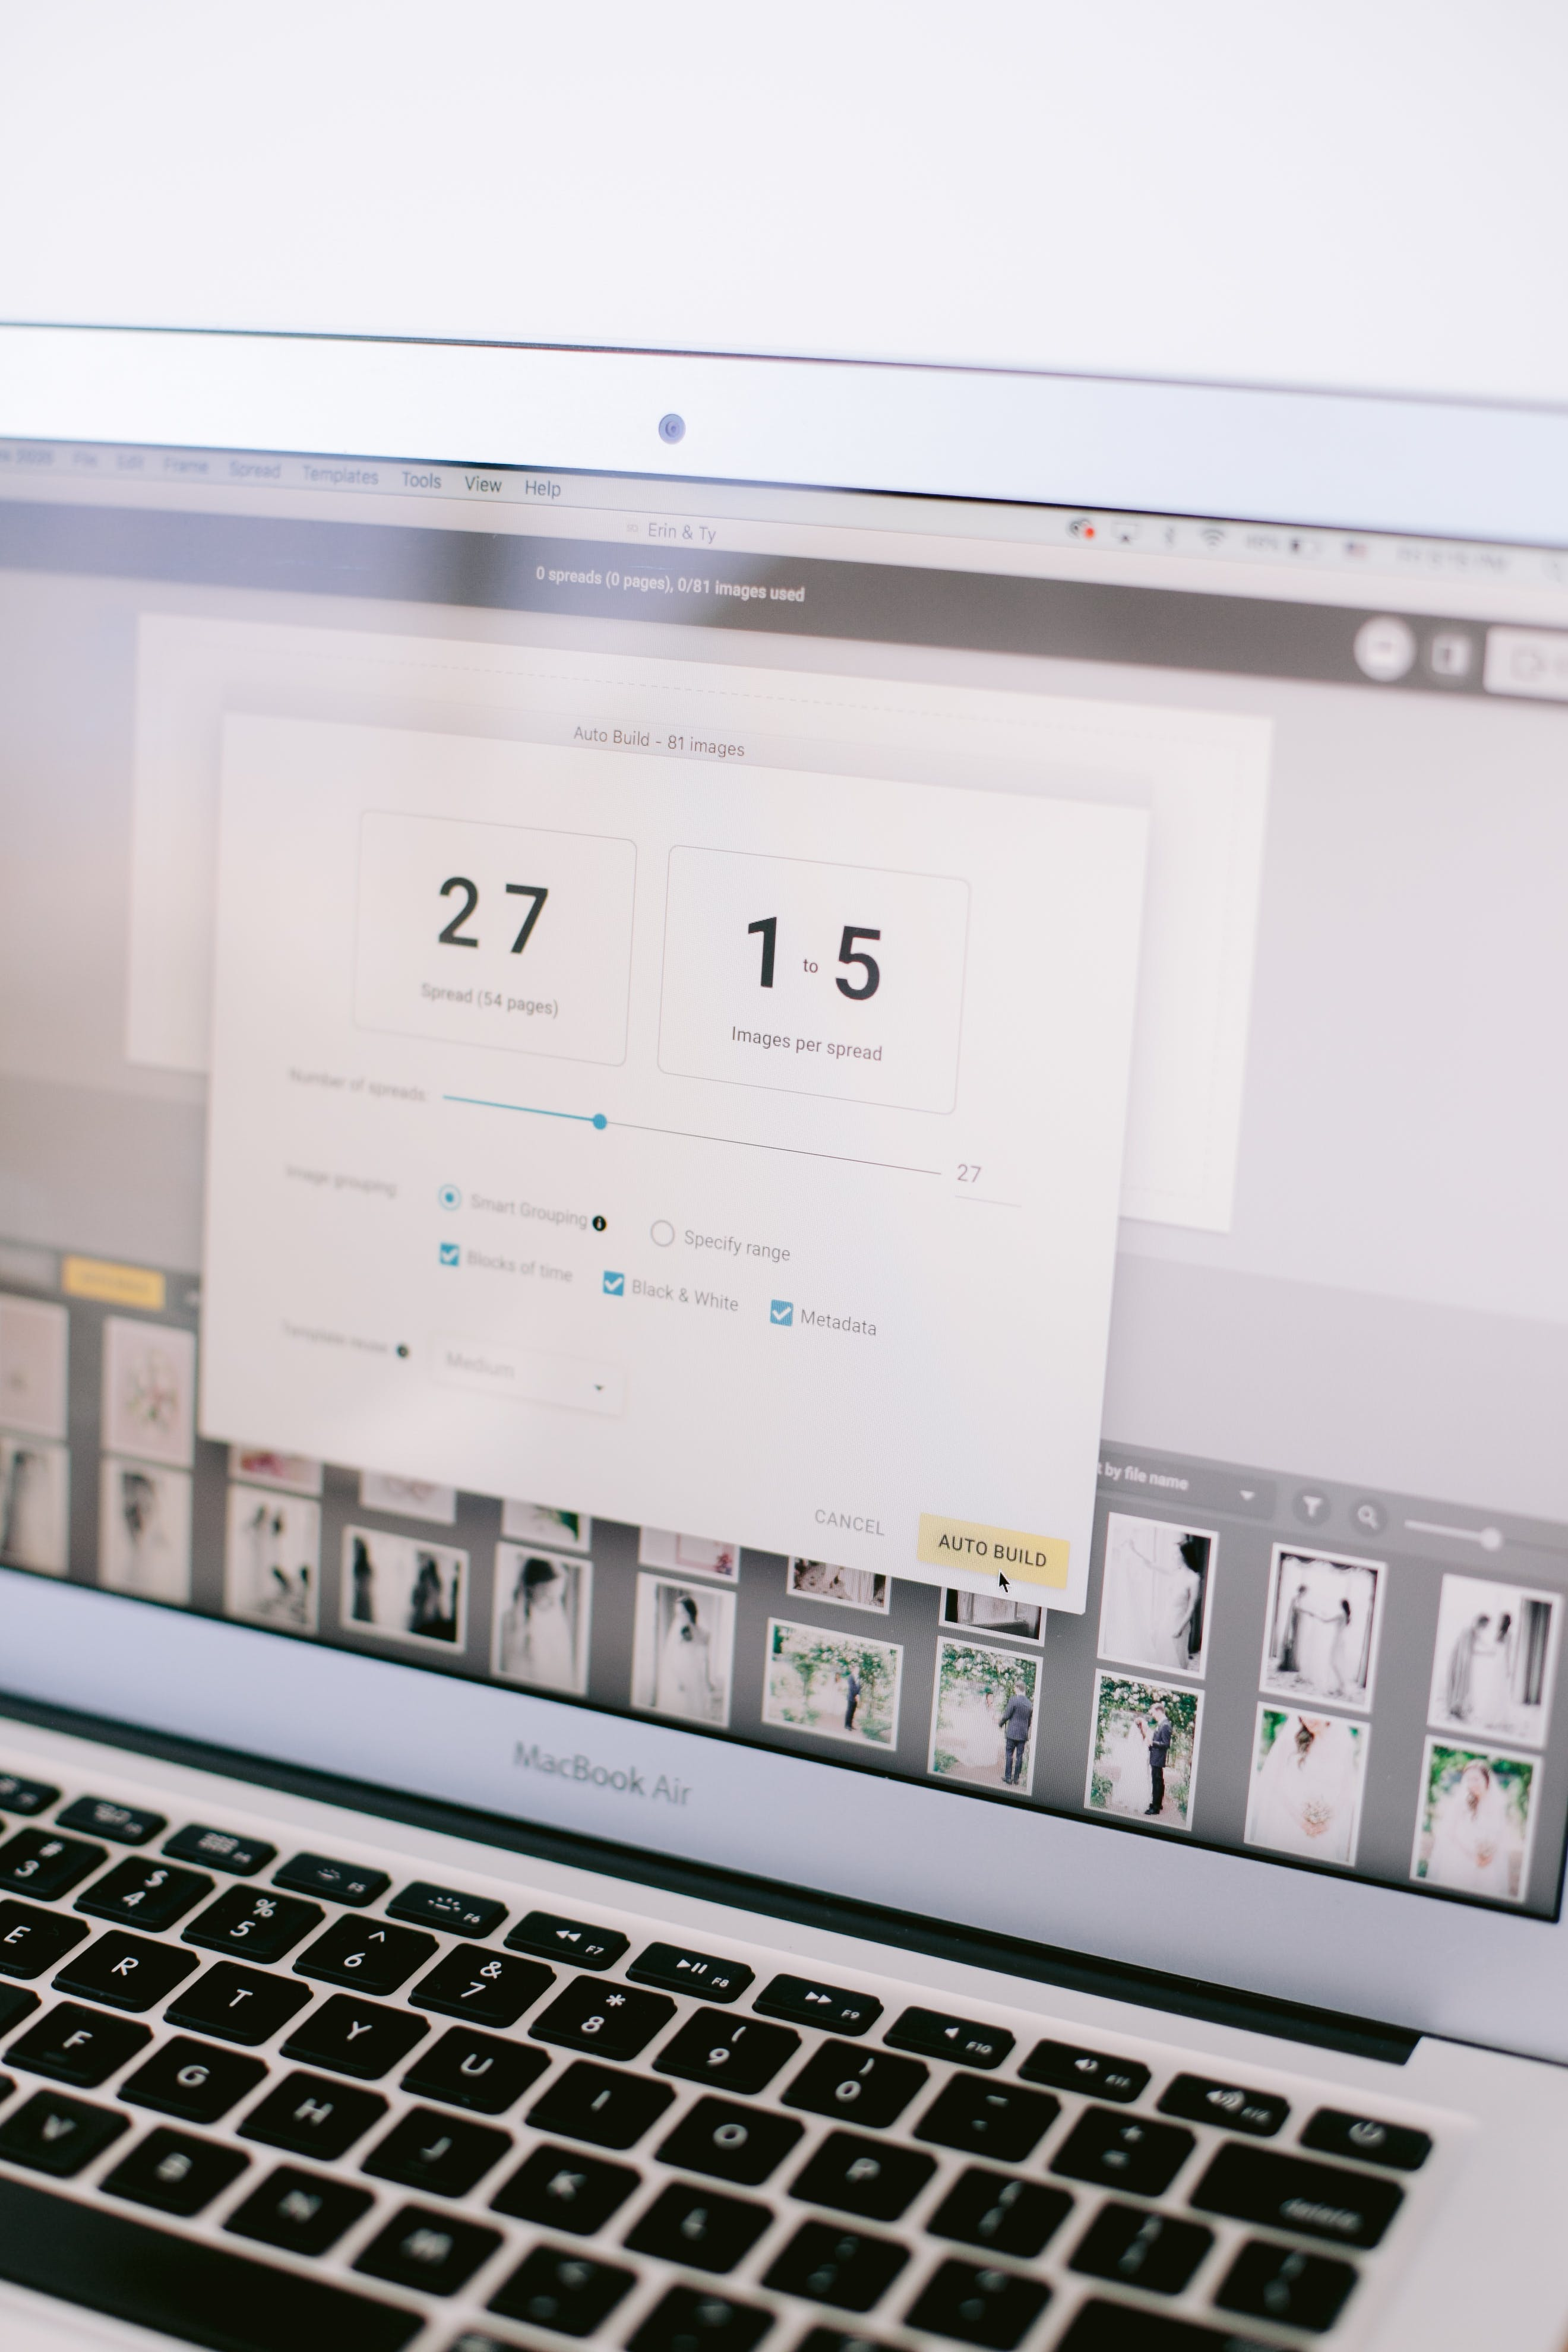 SmartAlbums Auto Build feature allows photographers to design a photo album for their clients quickly and easily